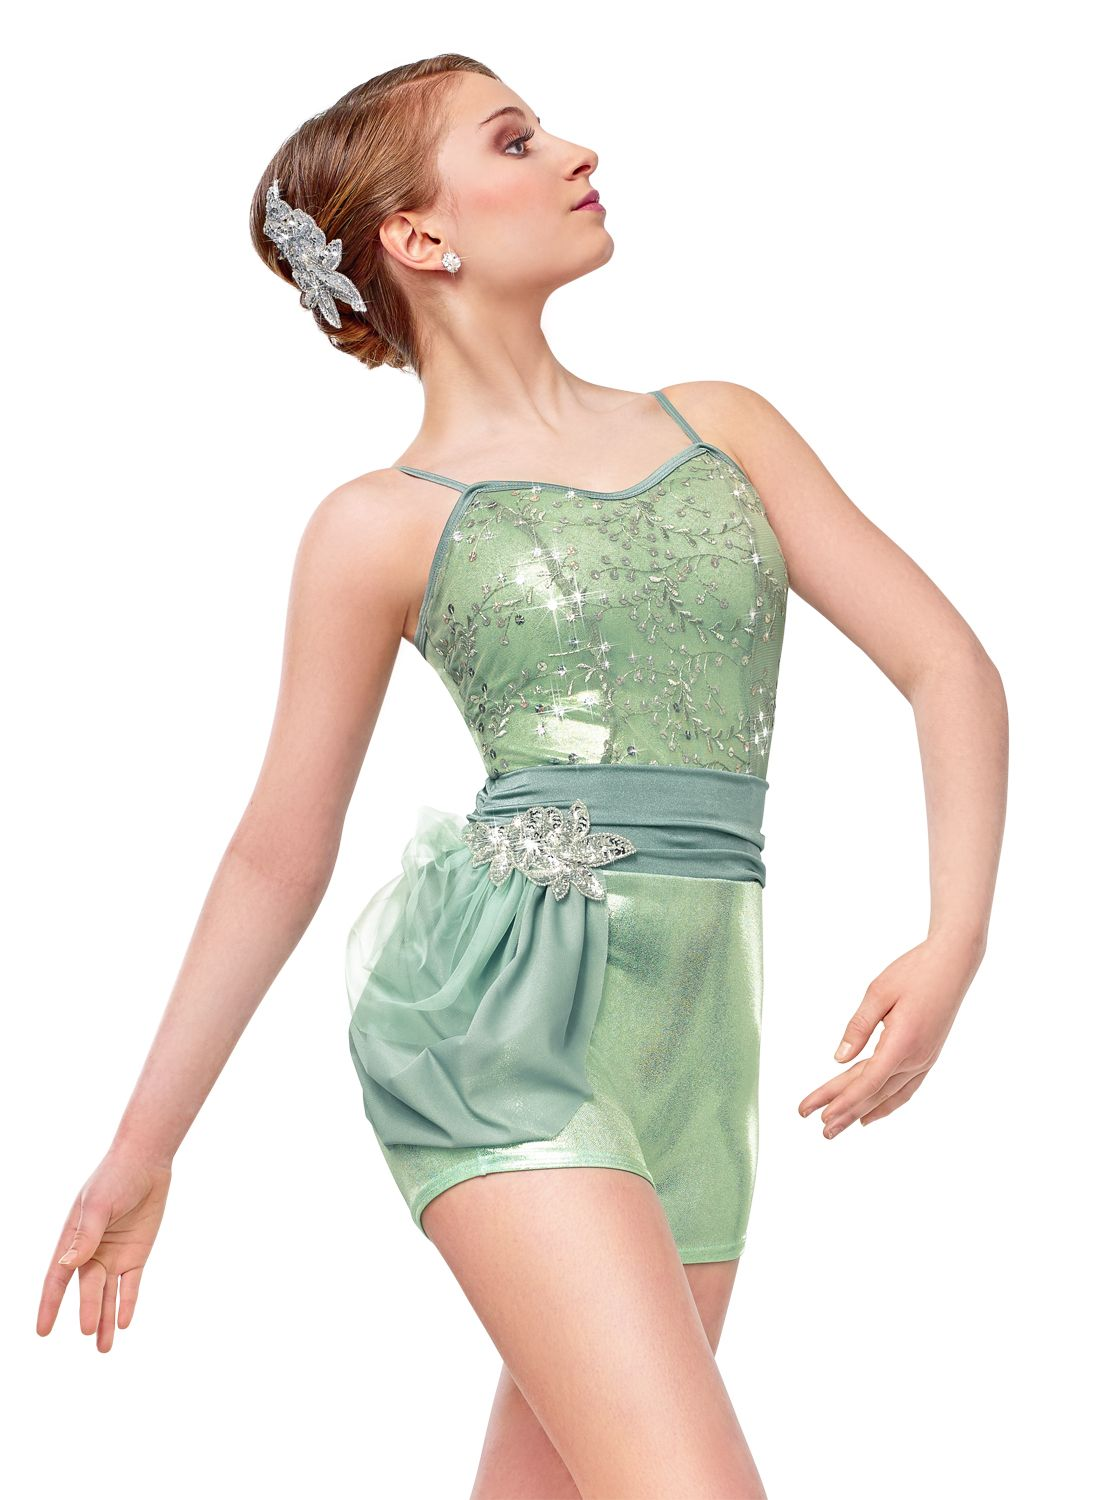 Metallic looks are hot this year, like this costume by Curtain Call. #FashionFriday